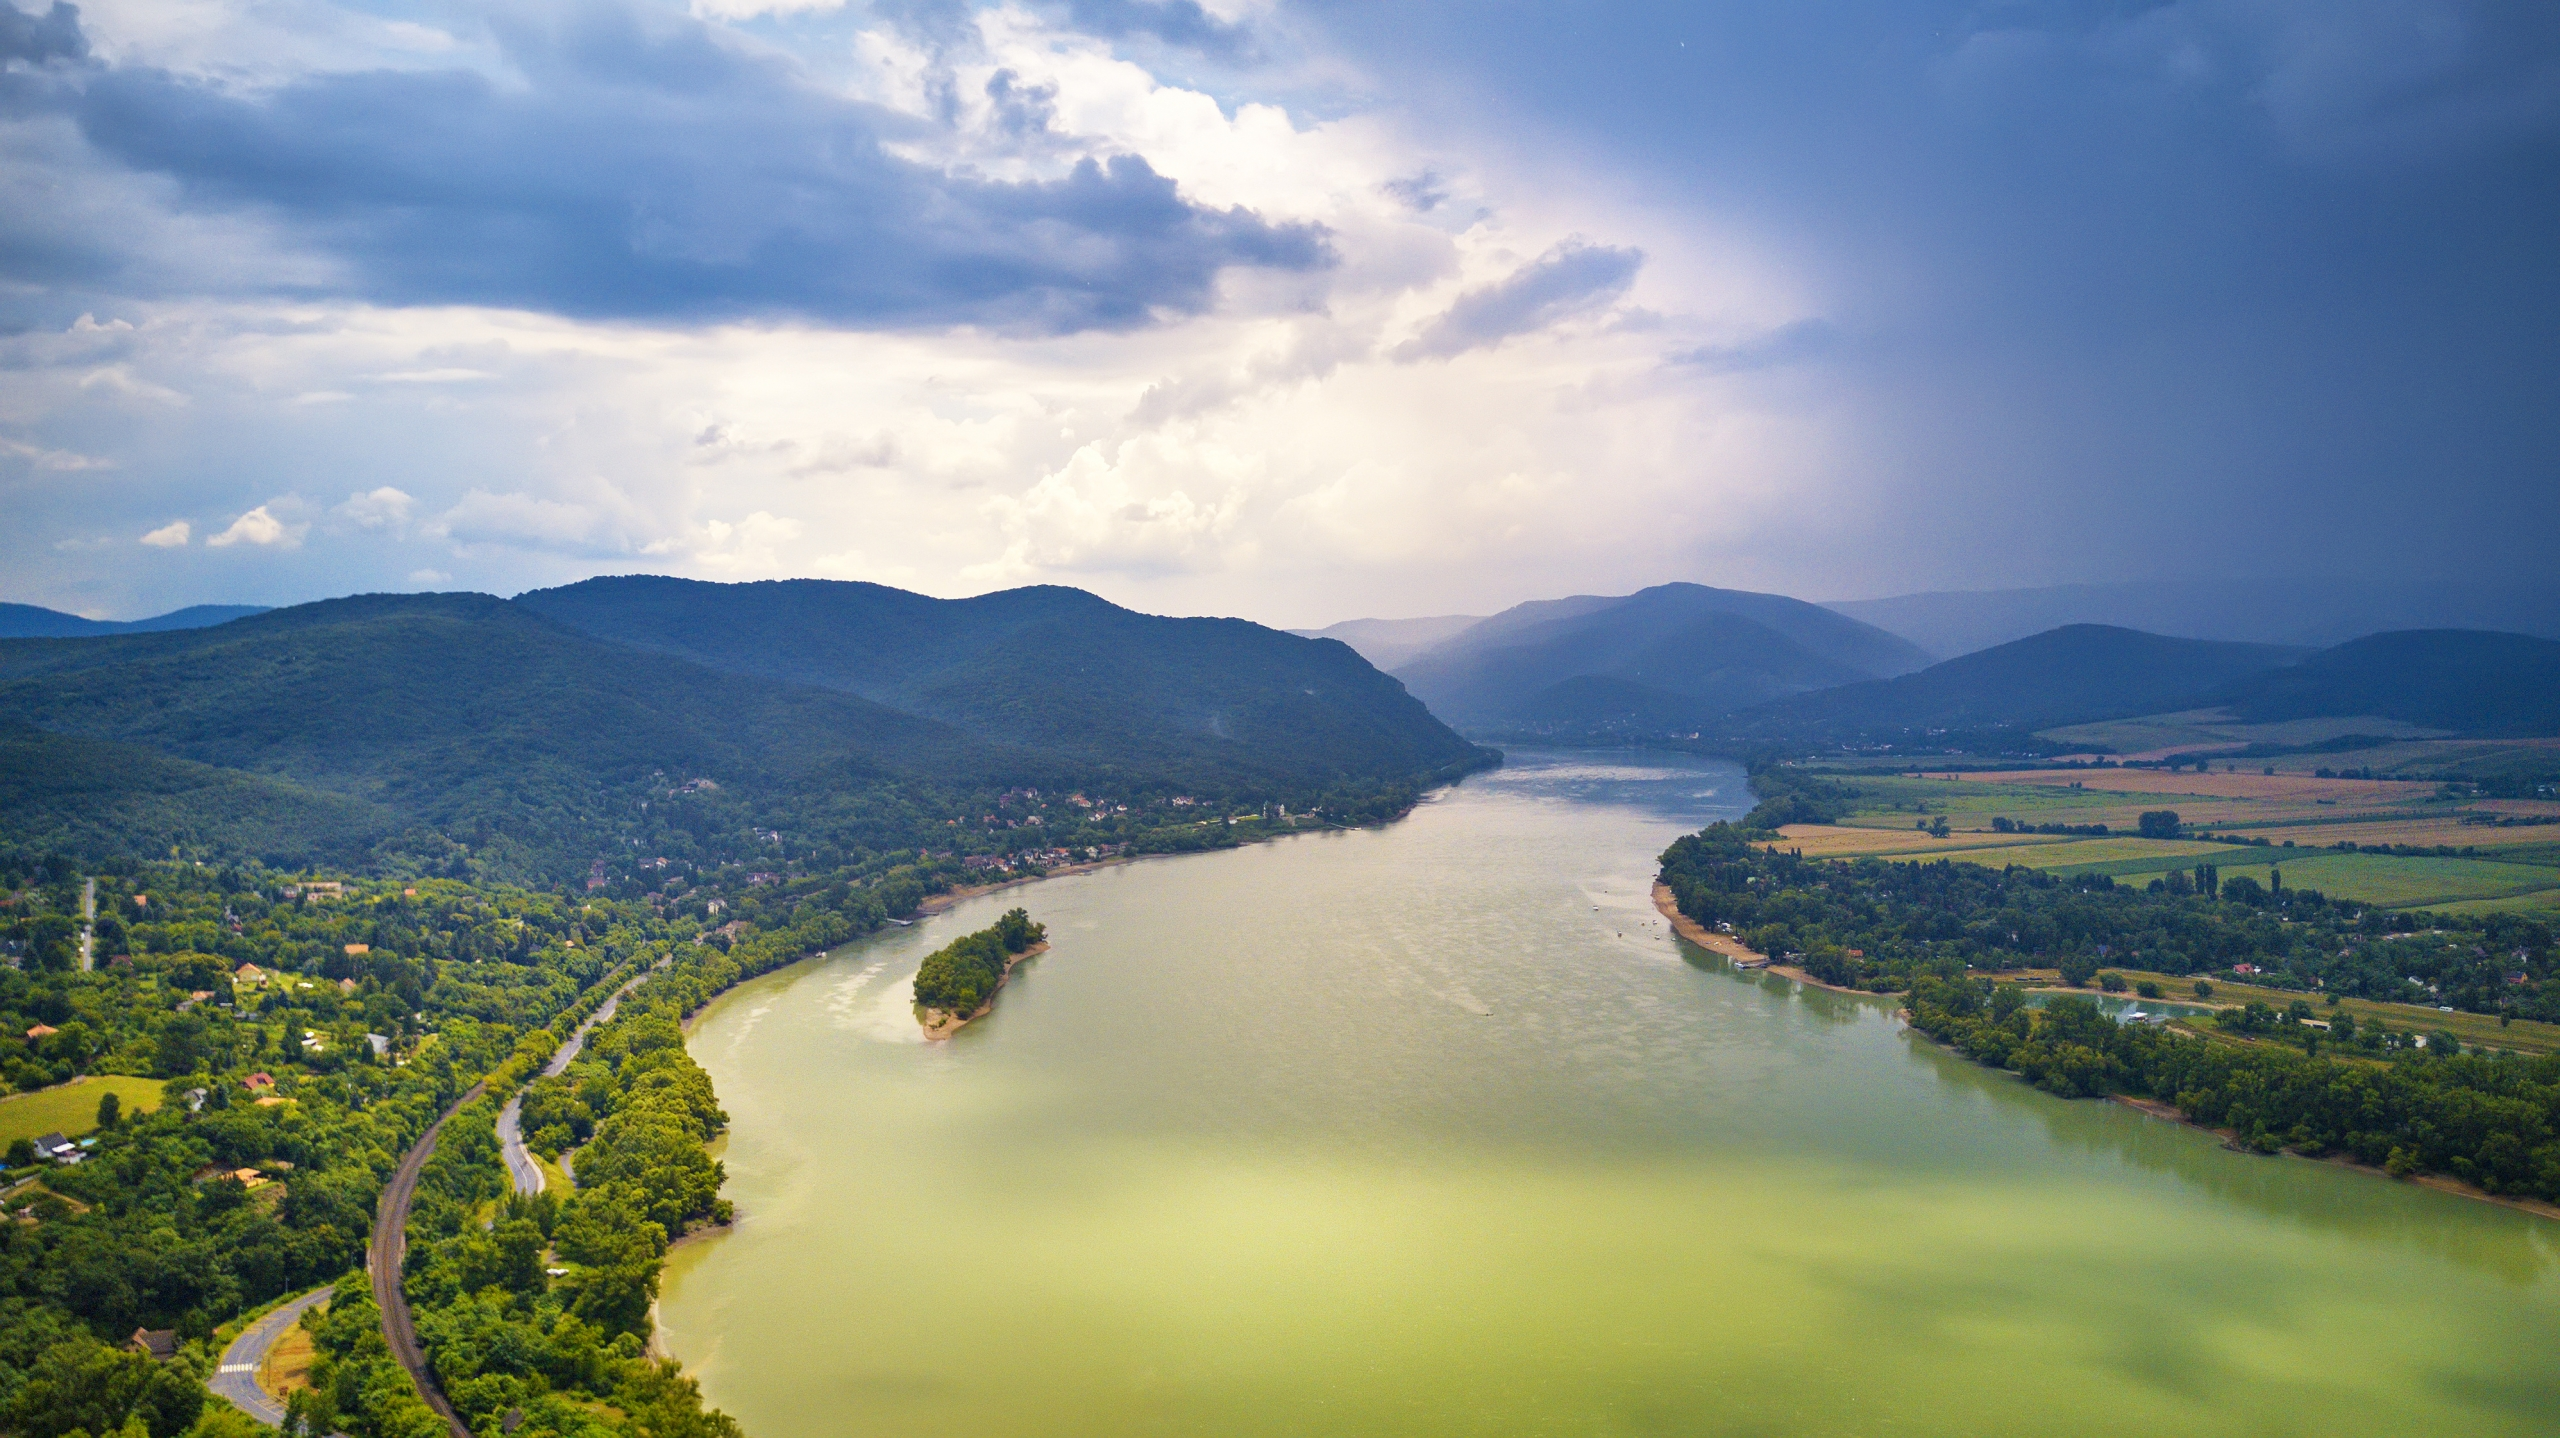 Summer rain and stormy weather. Danube river valley panorama.